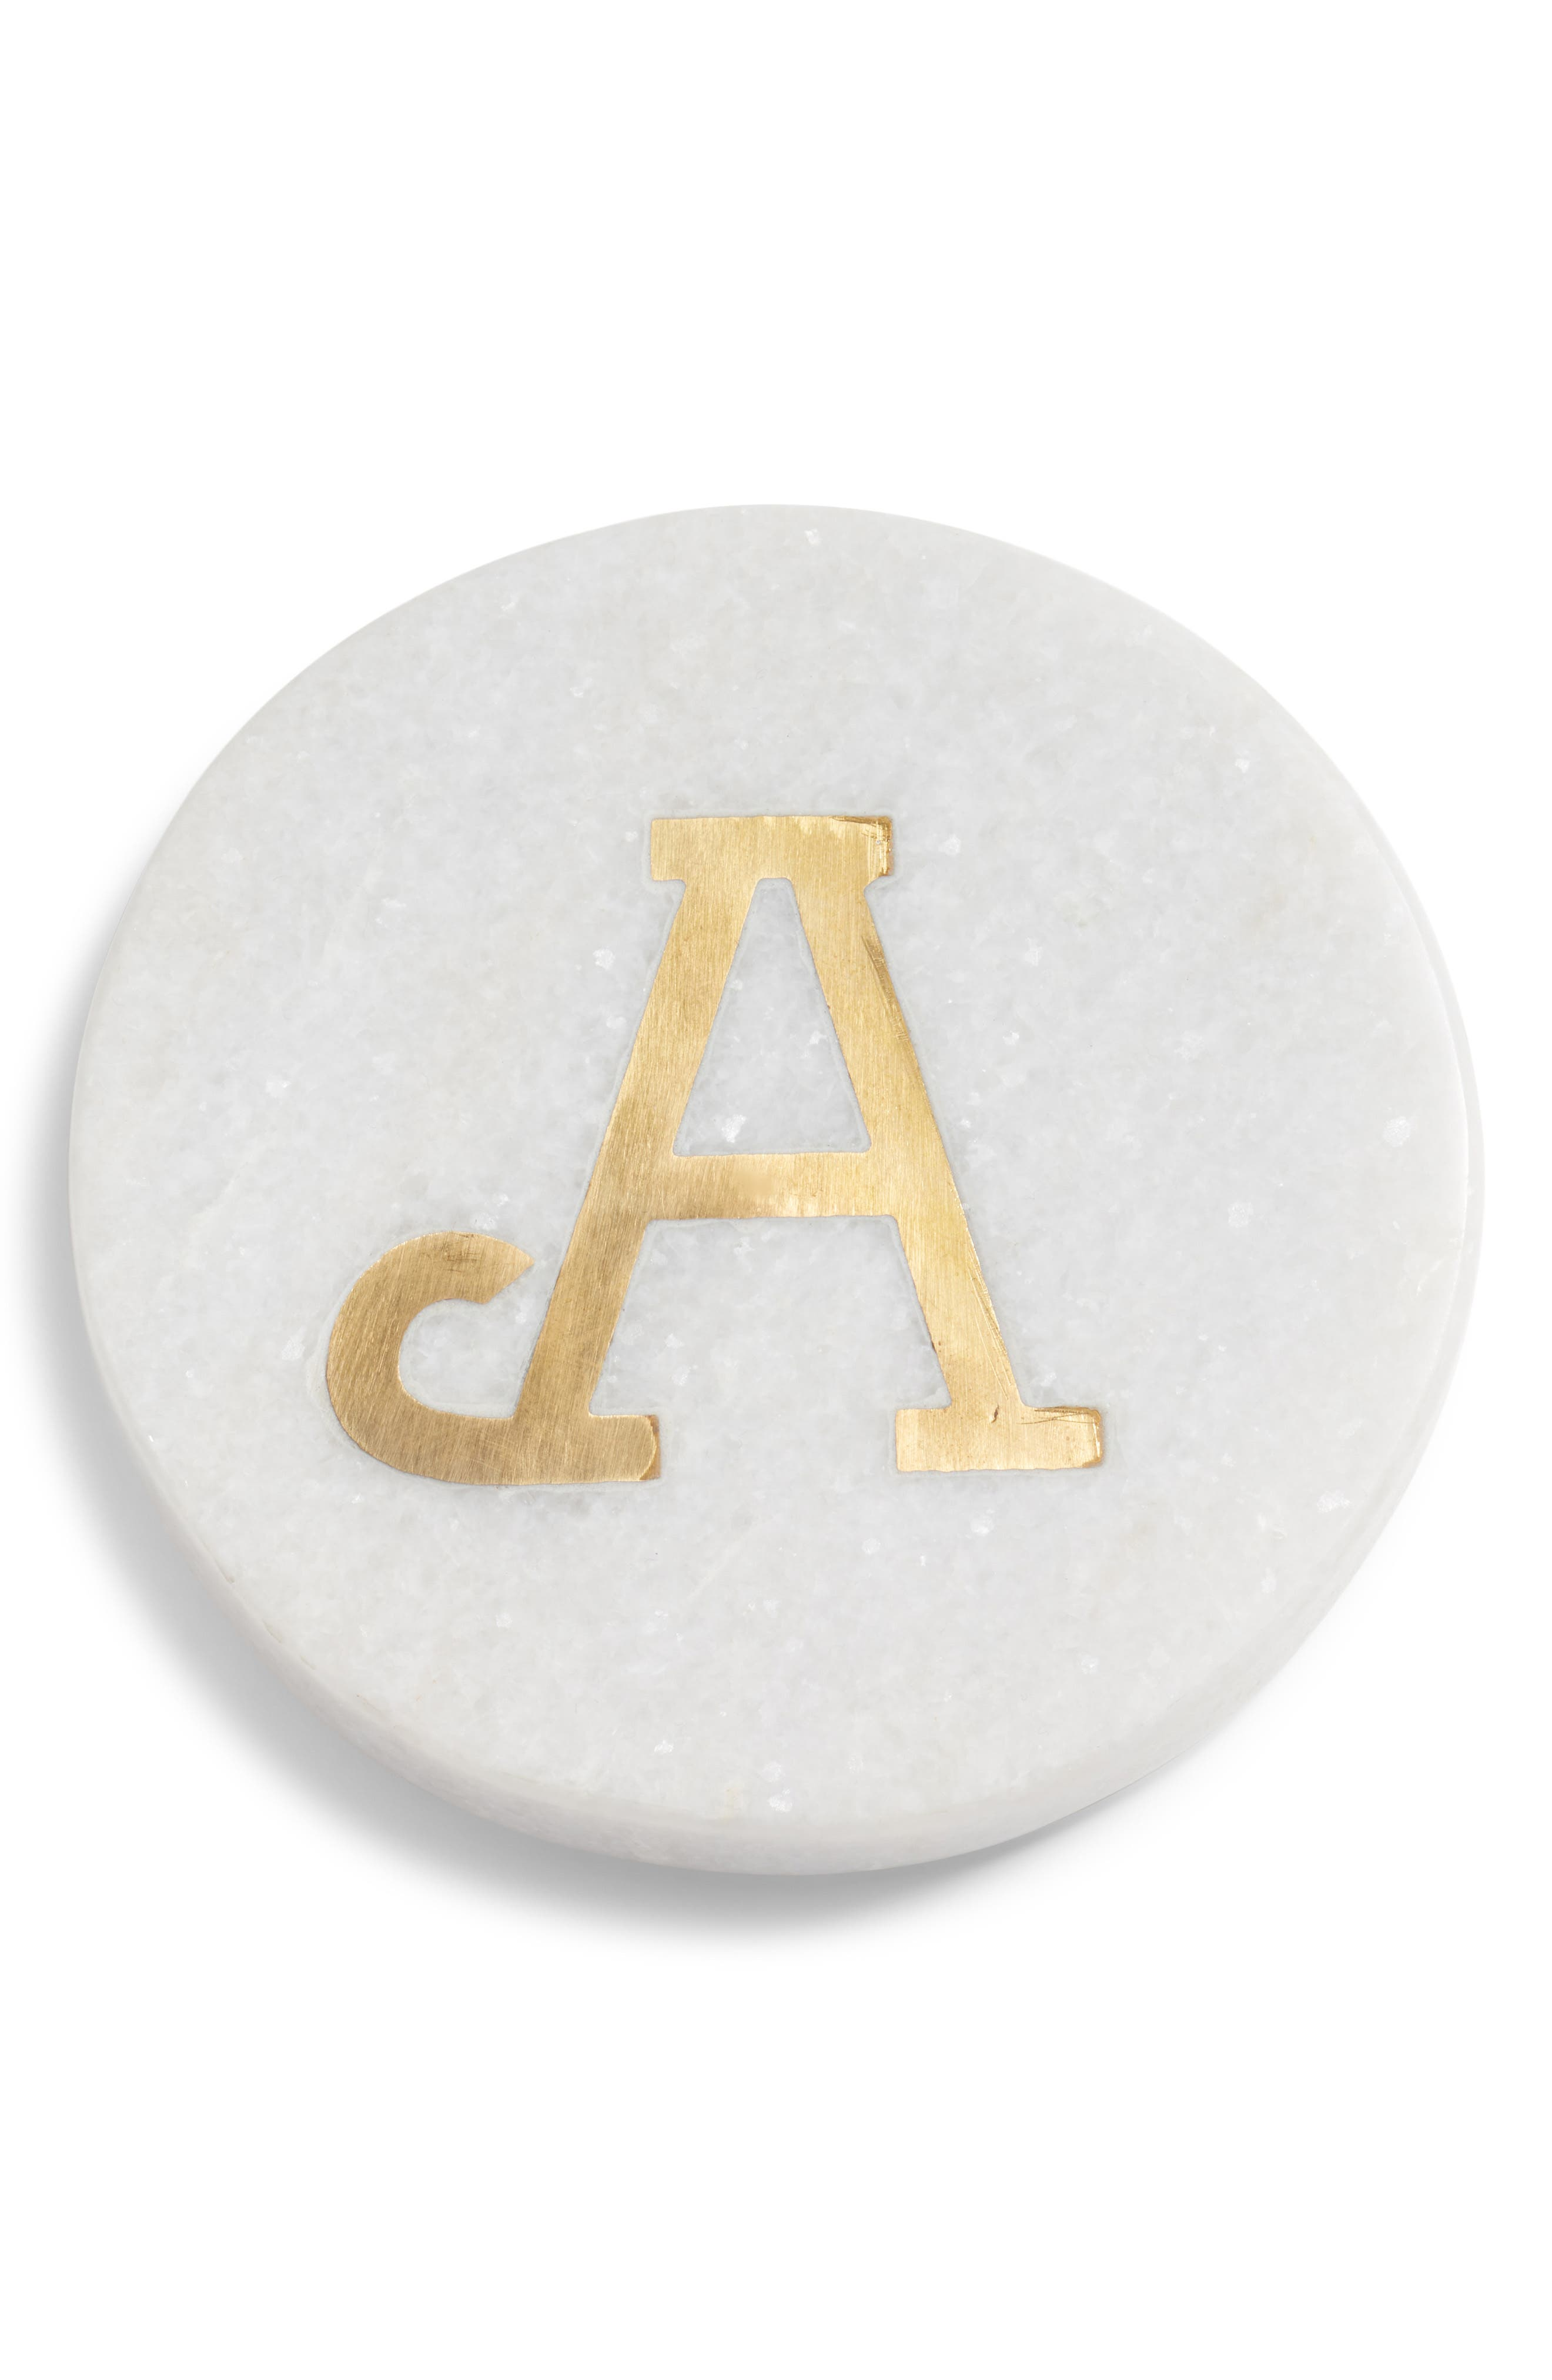 NORDSTROM AT HOME Marble Monogram Coaster, Main, color, WHITE/ GOLD A